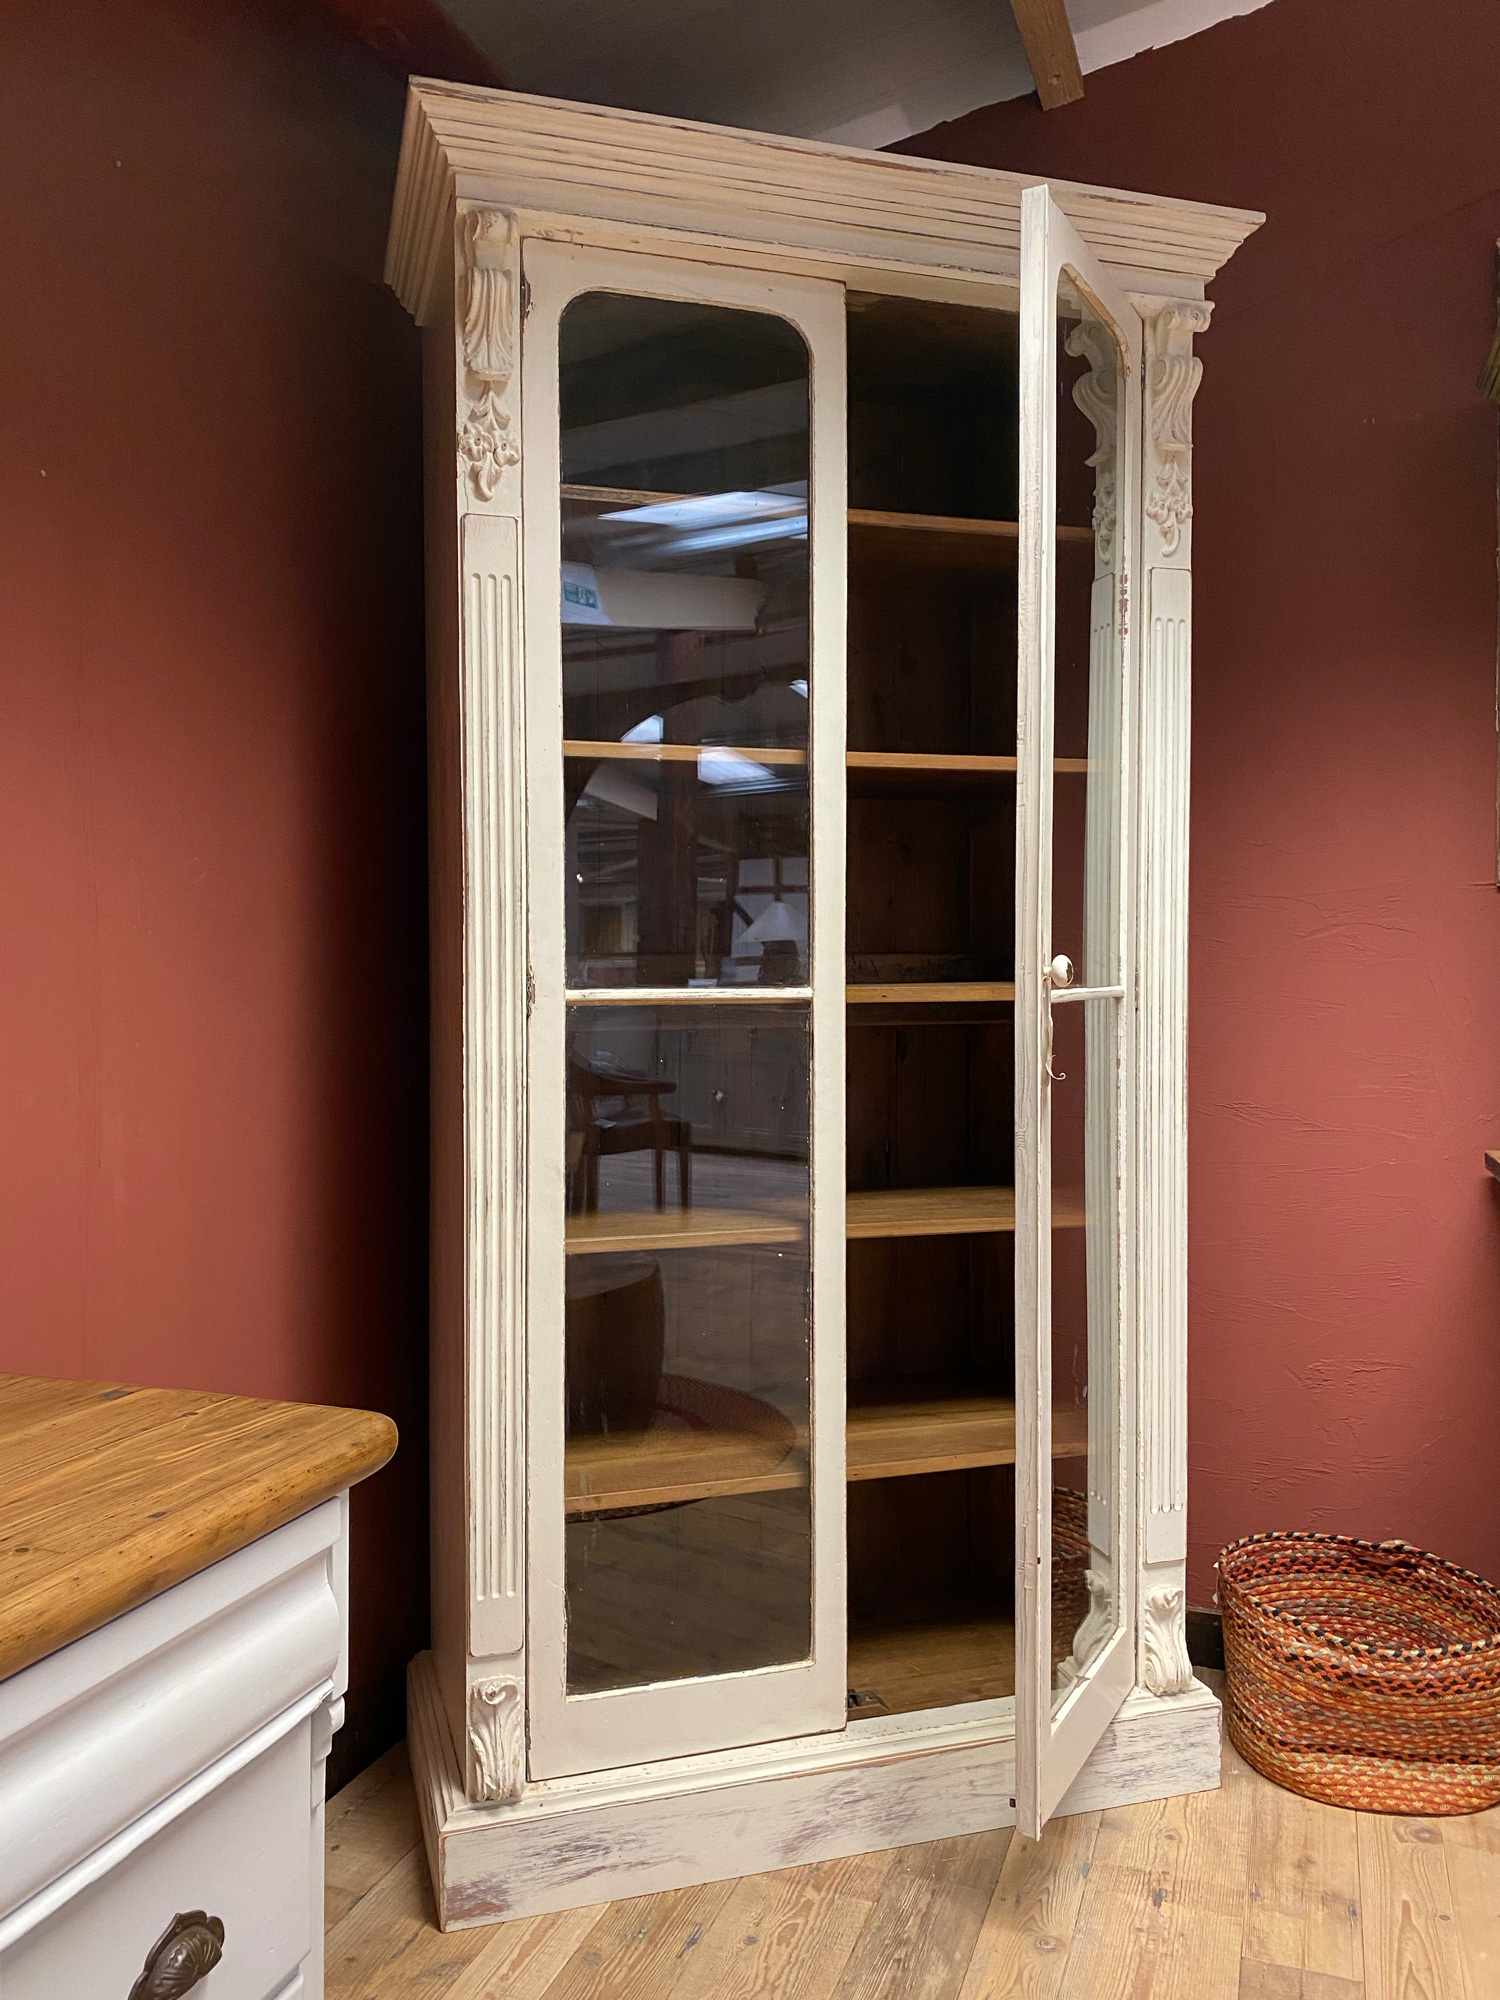 Single door open on tall glazed original bookcase